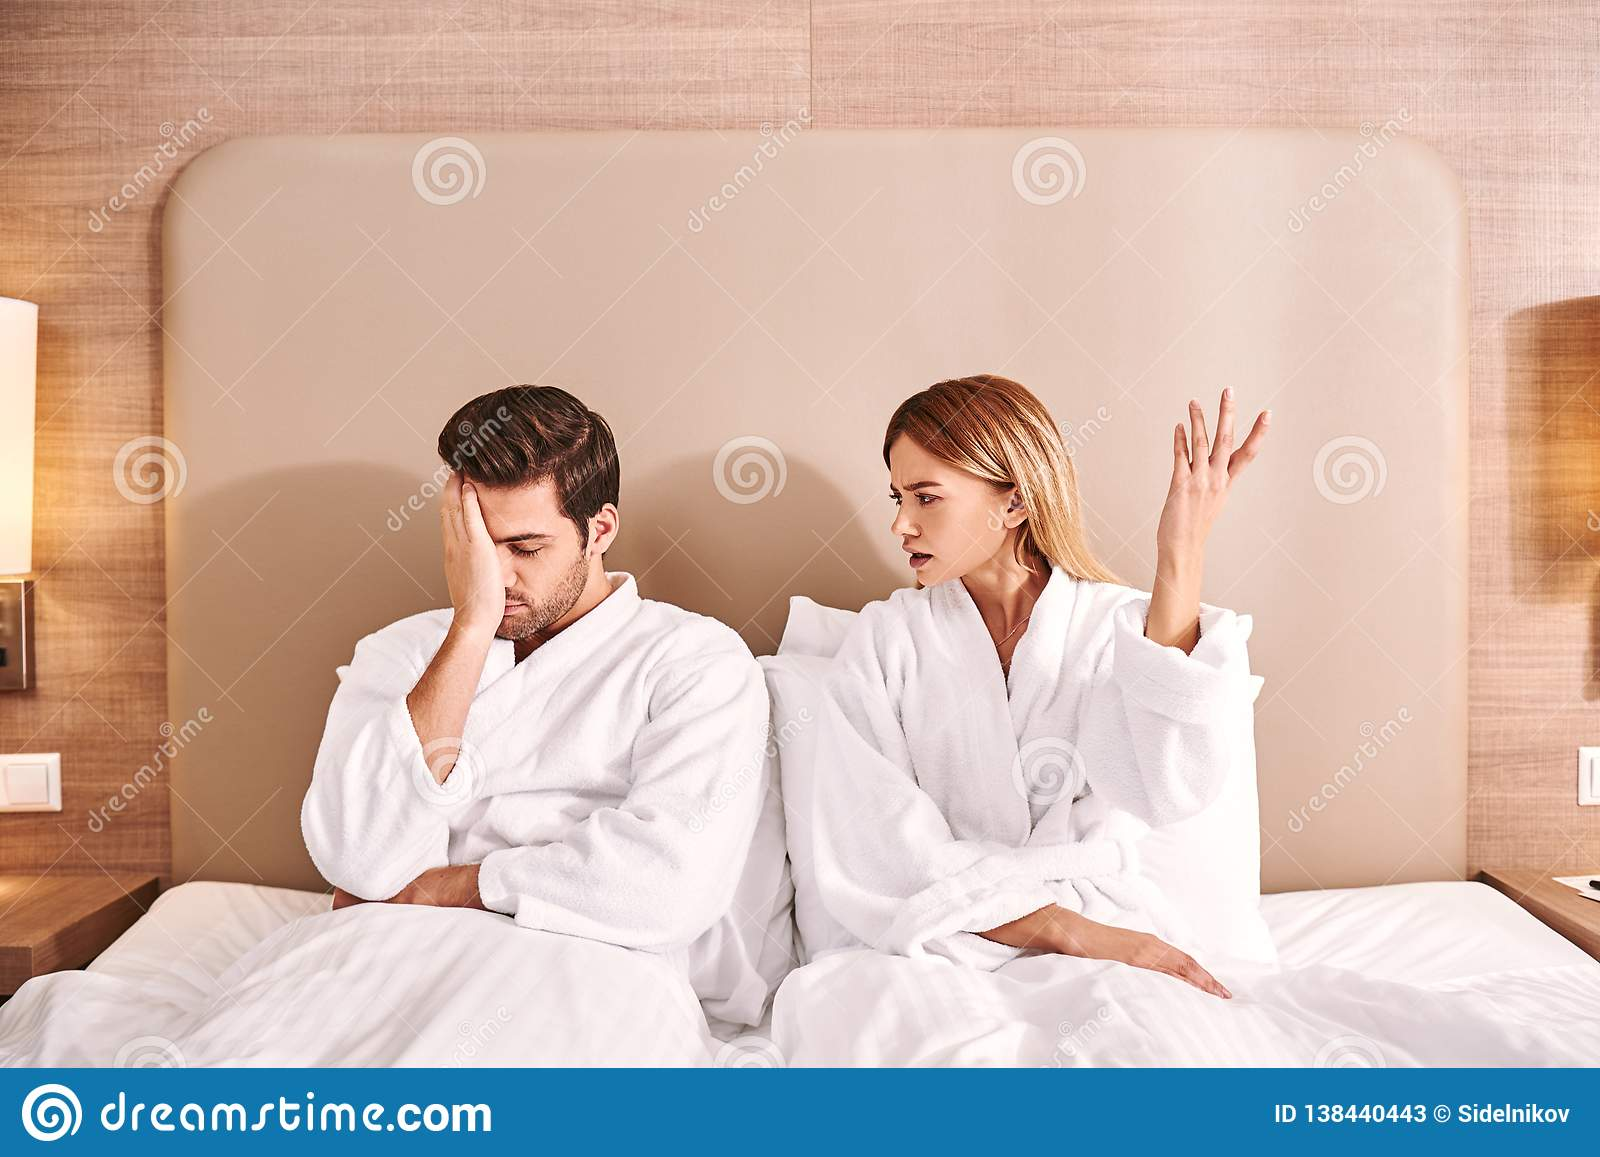 Difficult relationships. Woman have a quarrel with her boyfriend in hotel